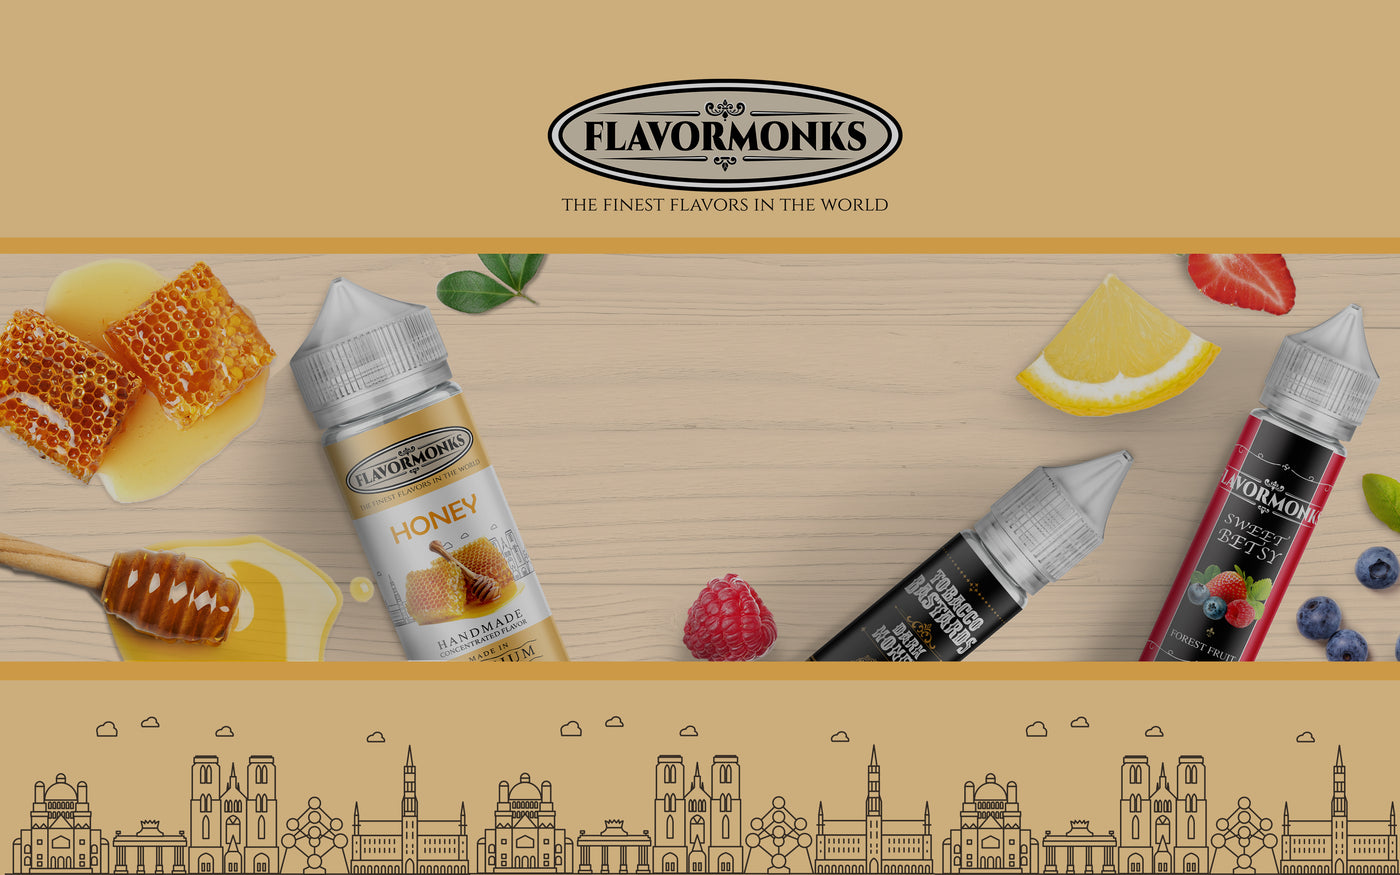 Nicotine River - Liquid Nicotine - Vegetable Glycerin - Flavors